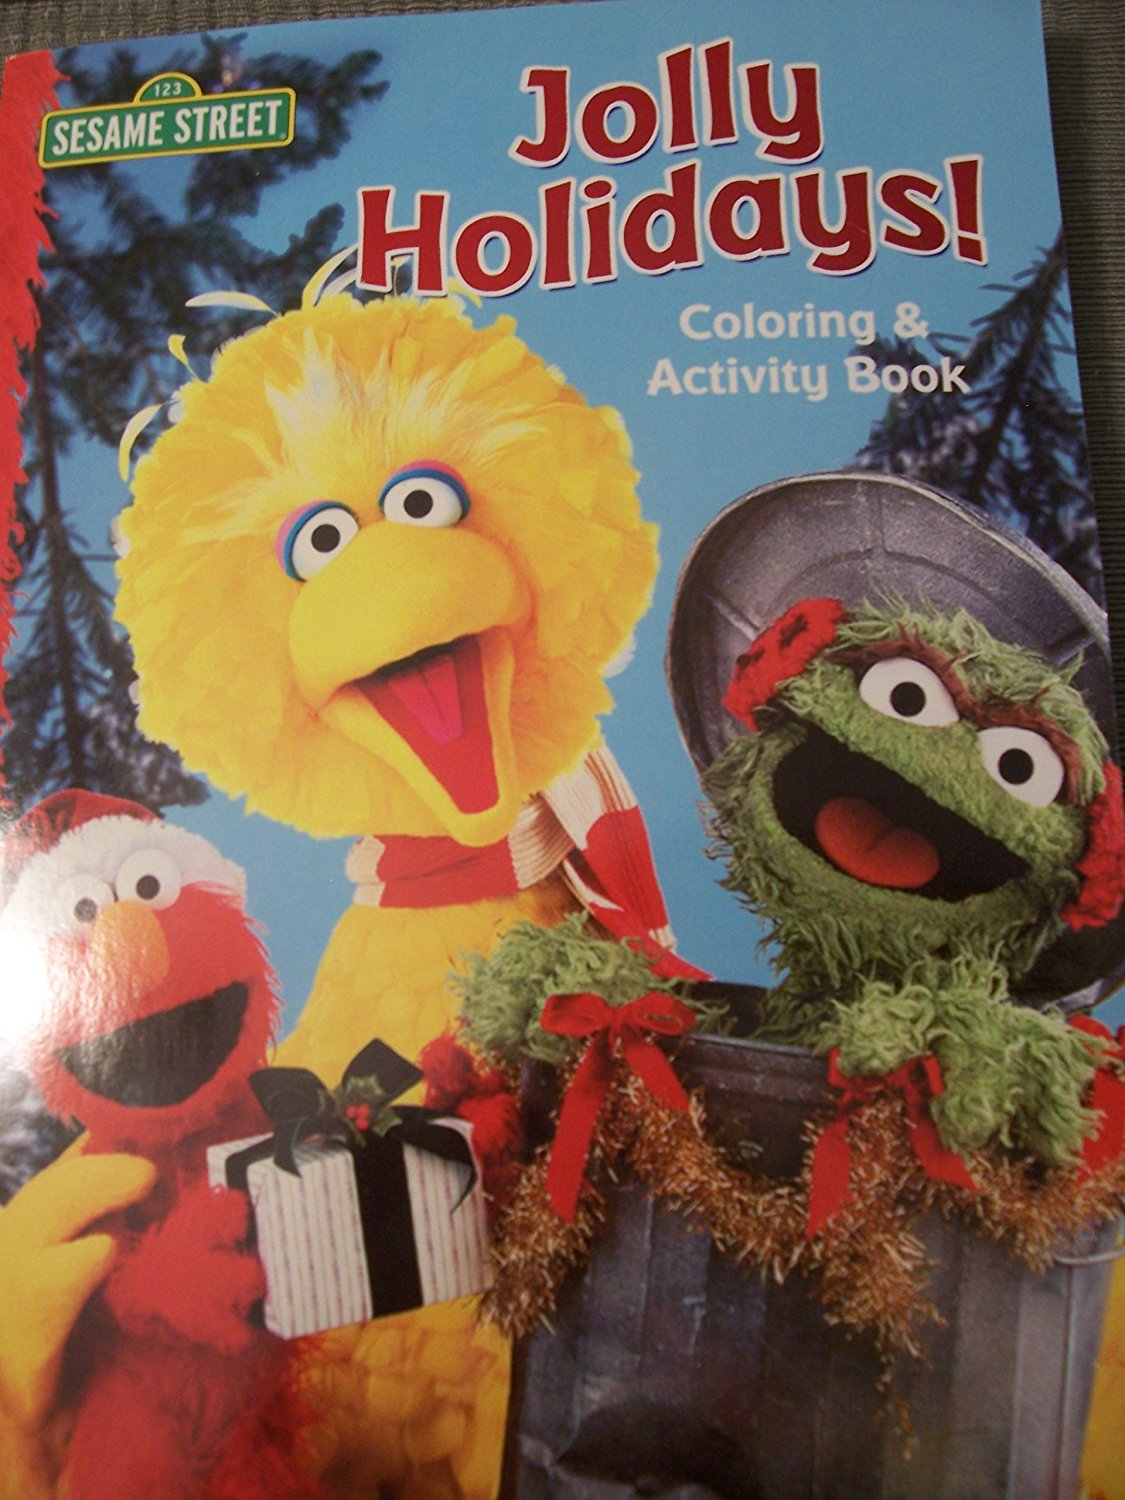 Sesame Street Coloring & Activity Book ~ Jolly Holidays!